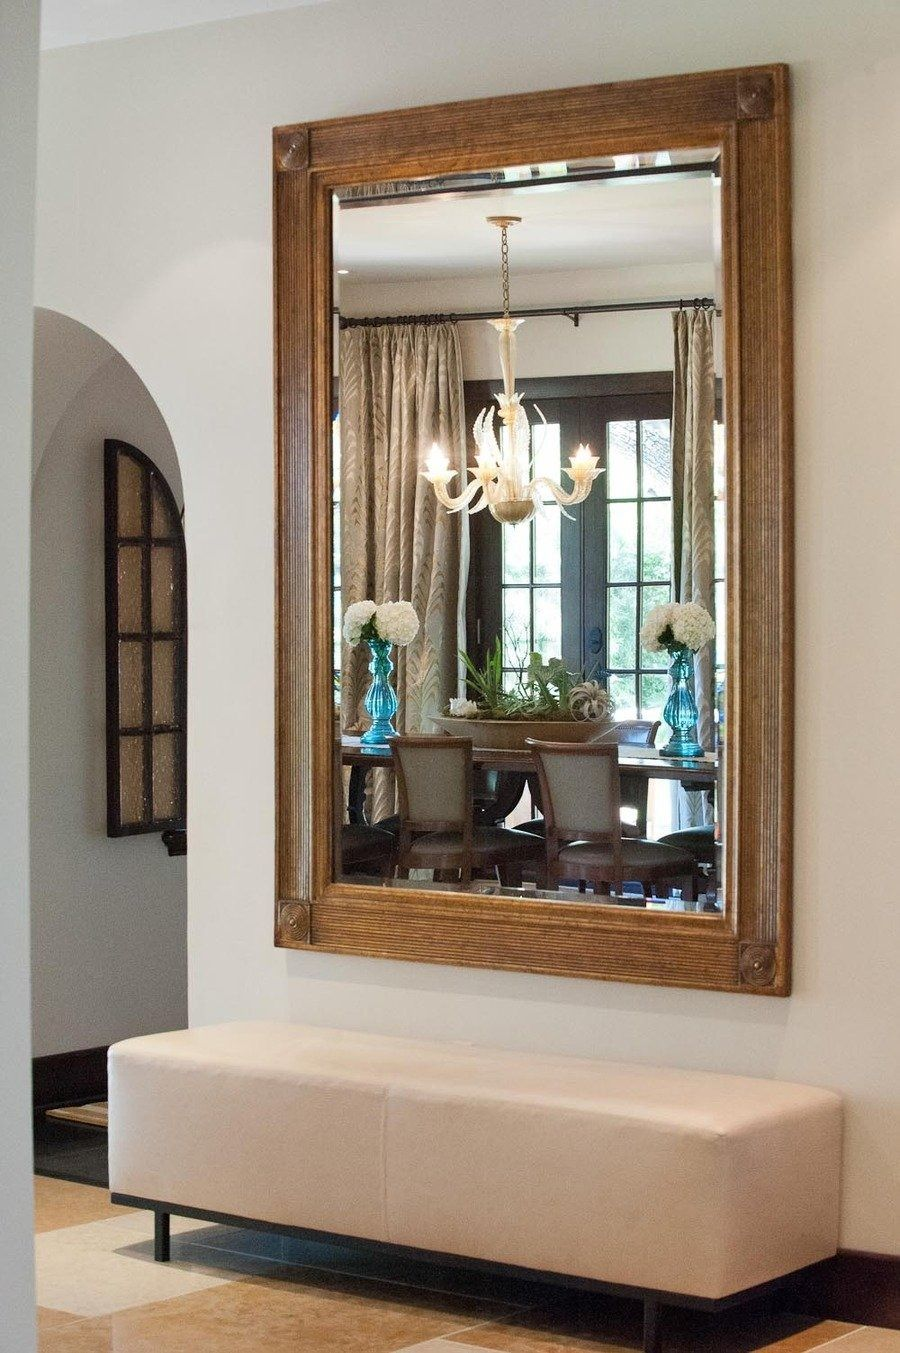 #bench, #entryway, #mirror Photography: Suzi Q - qweddings.com